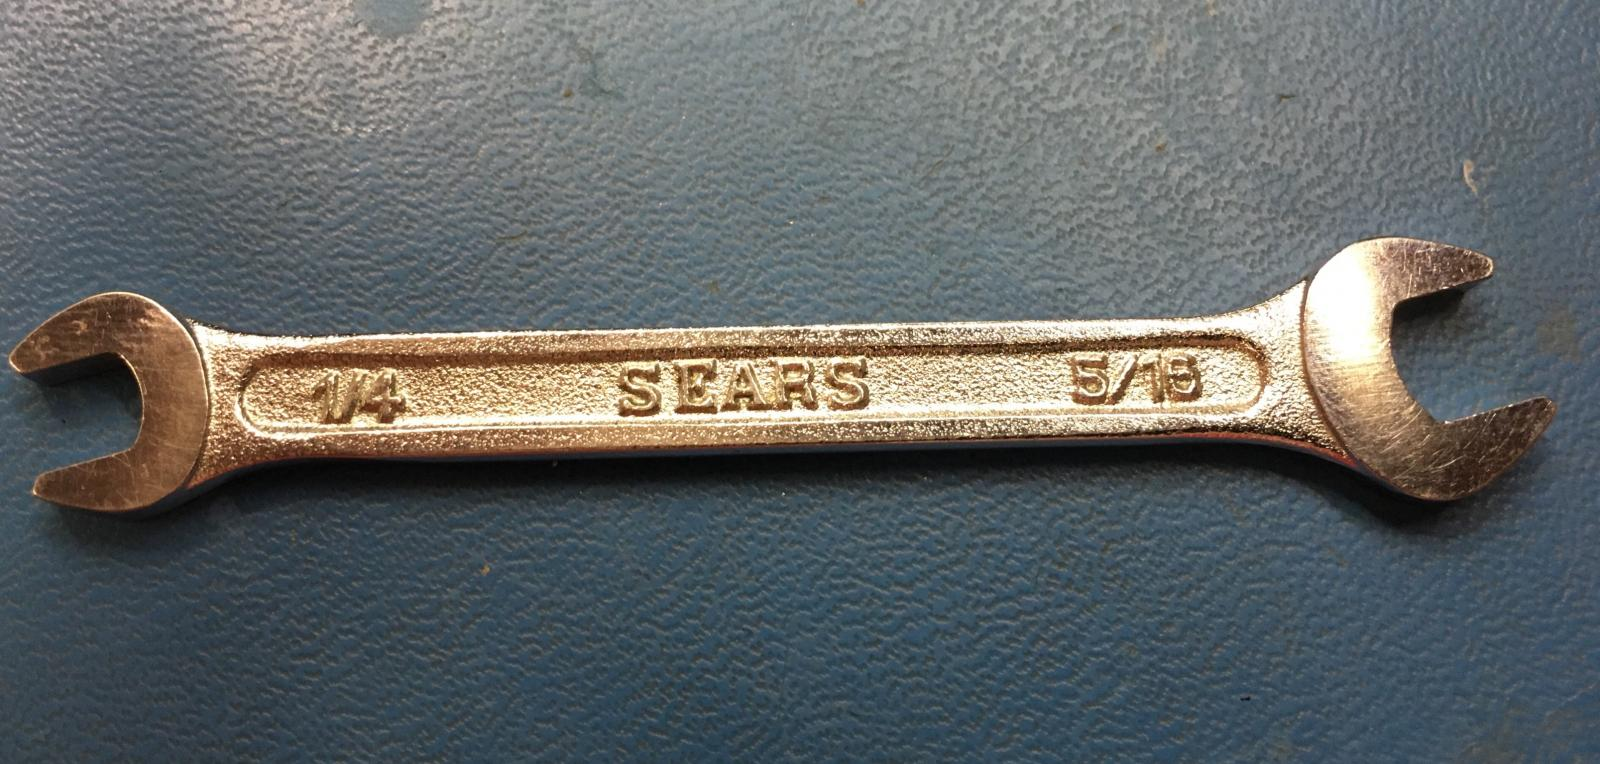 Sears wrench